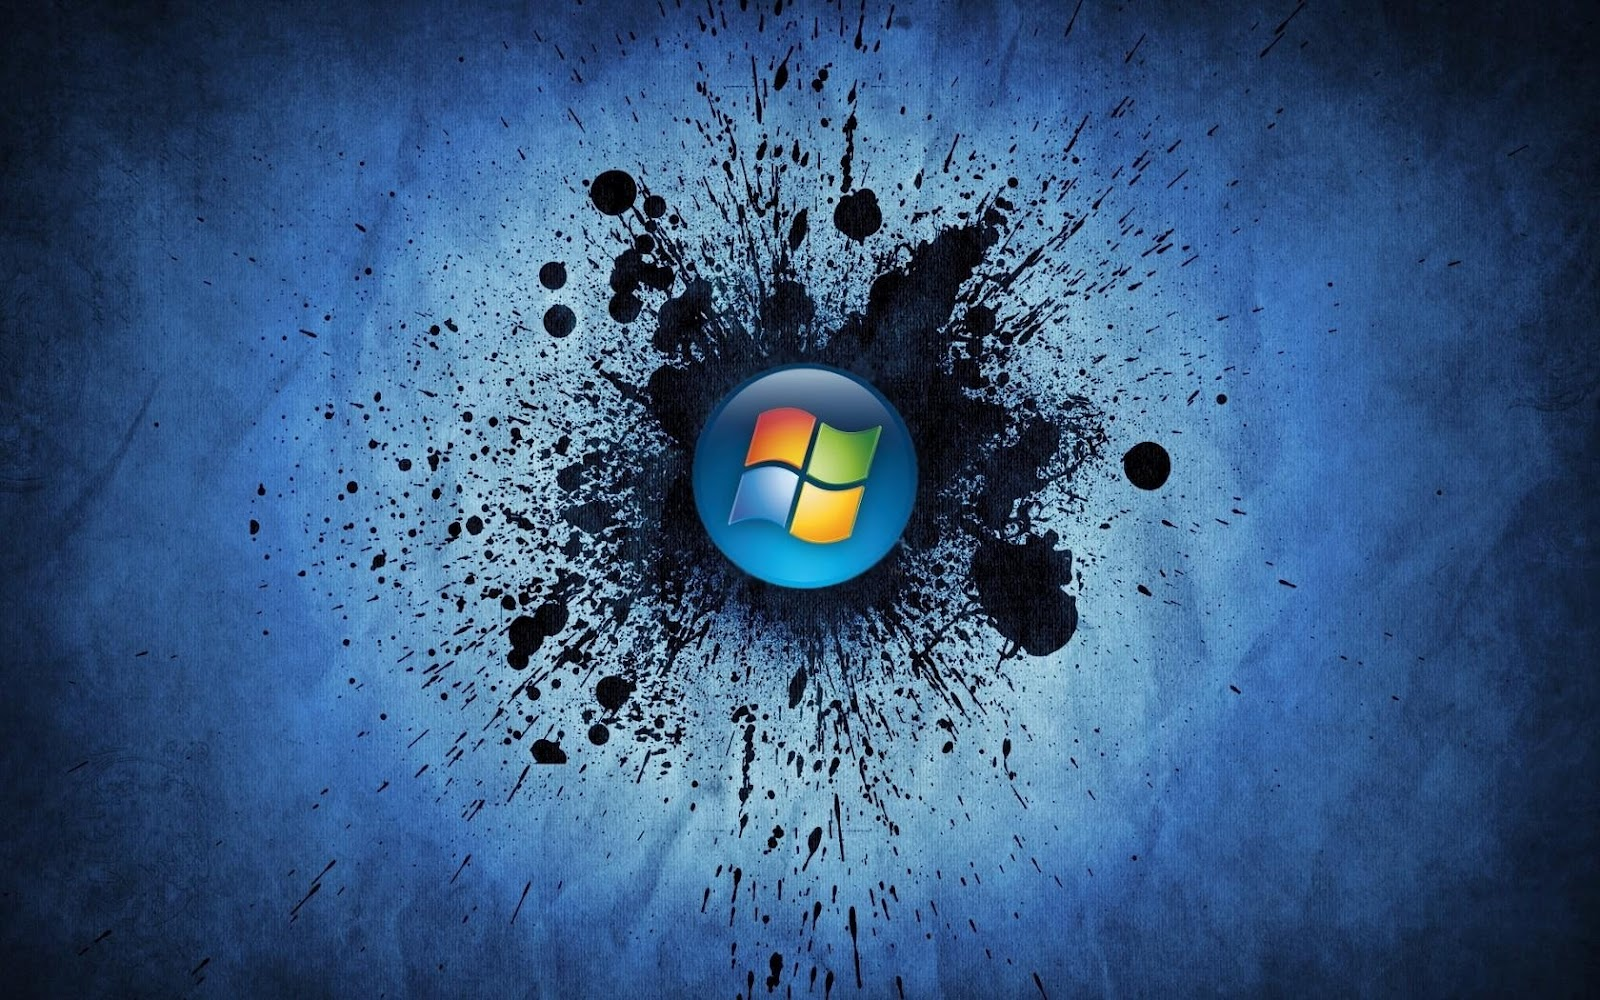 HD Wallpapers of Windows 7   HD Wallpapers